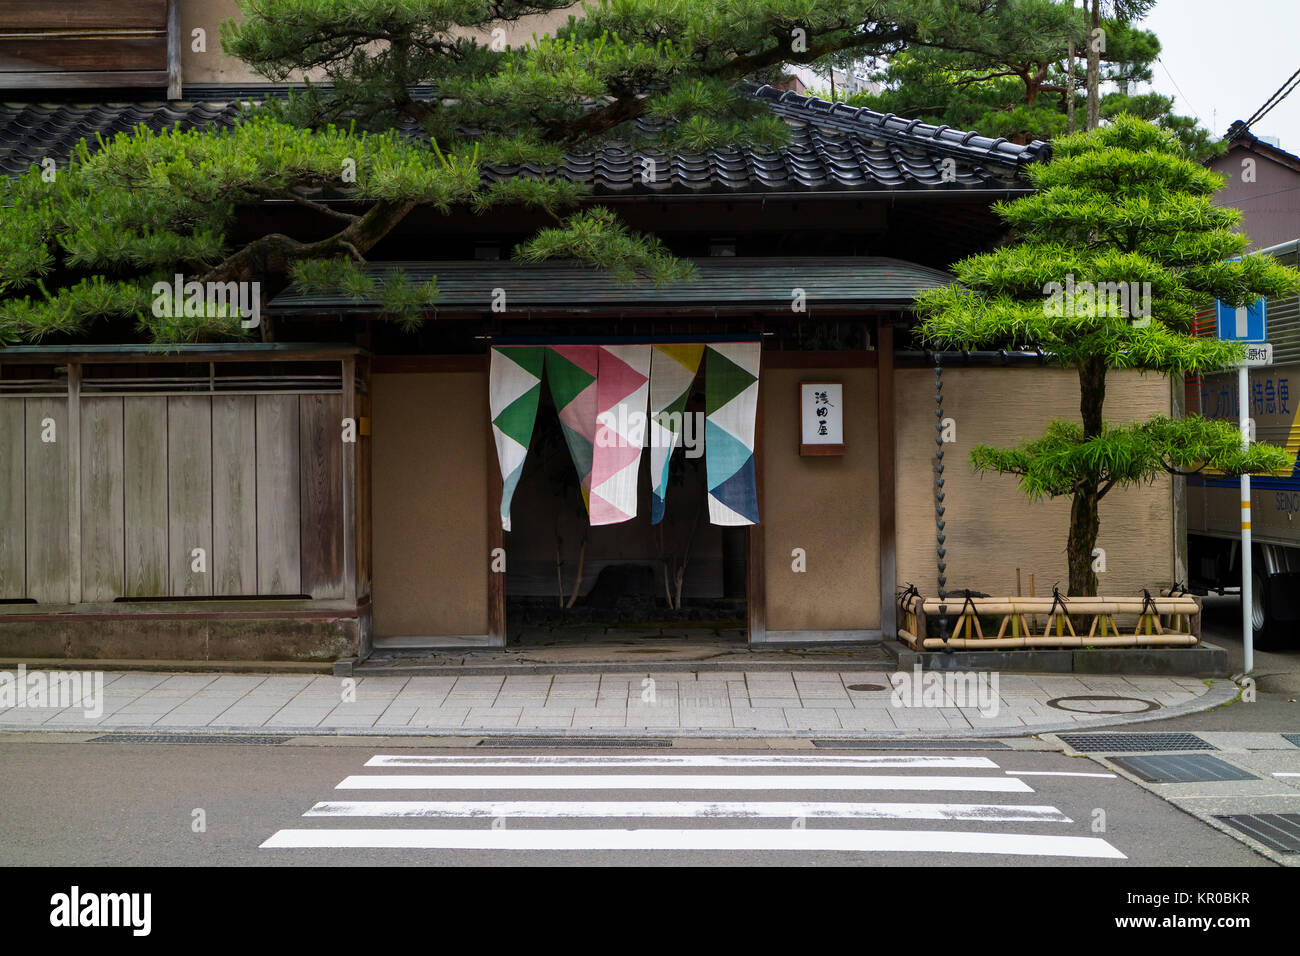 Kanazawa - Japan, June 10, 2017: Entrance to a restaurant with colorful curtains and trees in shape - Stock Image